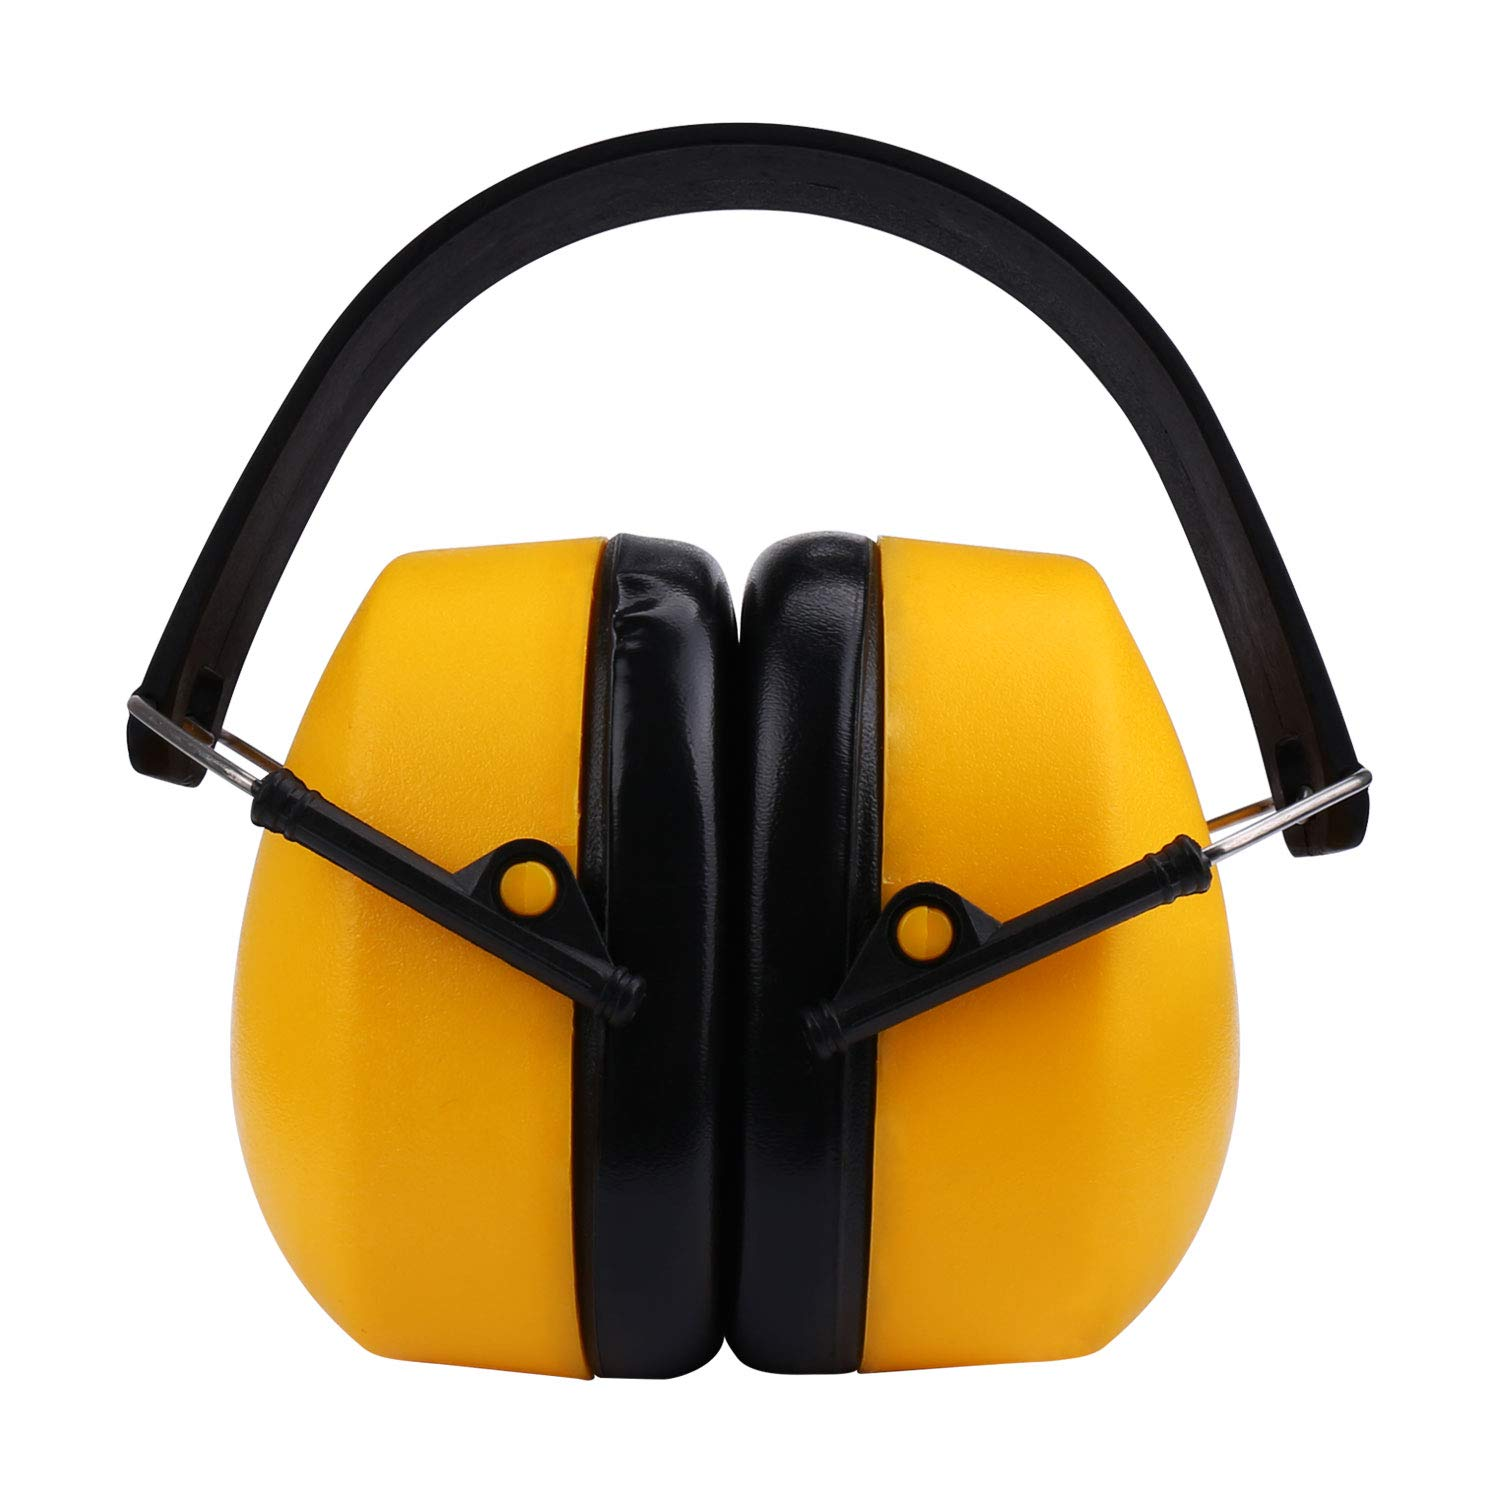 81403228797 Shooting Earmuffs/ Noise Soundproof Headset/Sport Headphones/ Hearing  Protection Ear Muffs for Industrial Firearm Hunting, Relaxing Earphones for  Work, ...